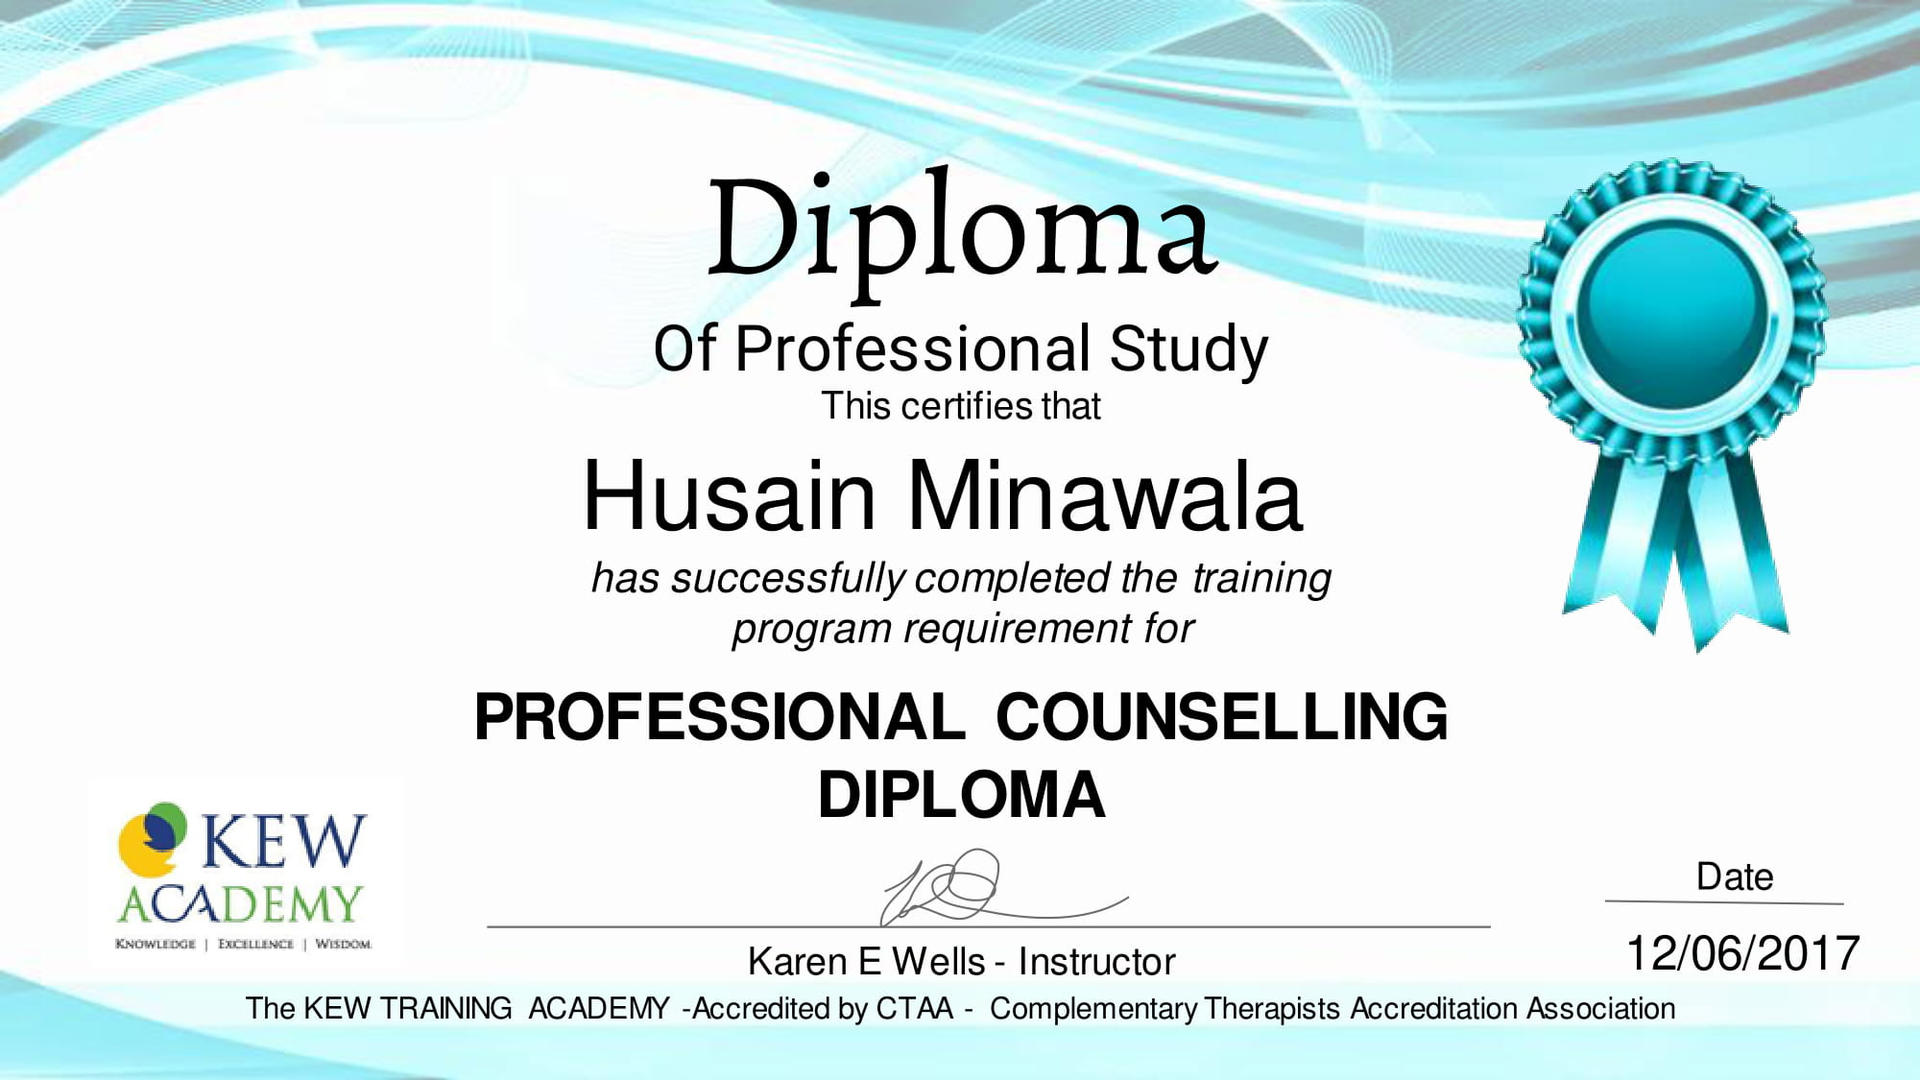 PROFESSIONAL COUNSELLING DIPLOMA-1.jpg